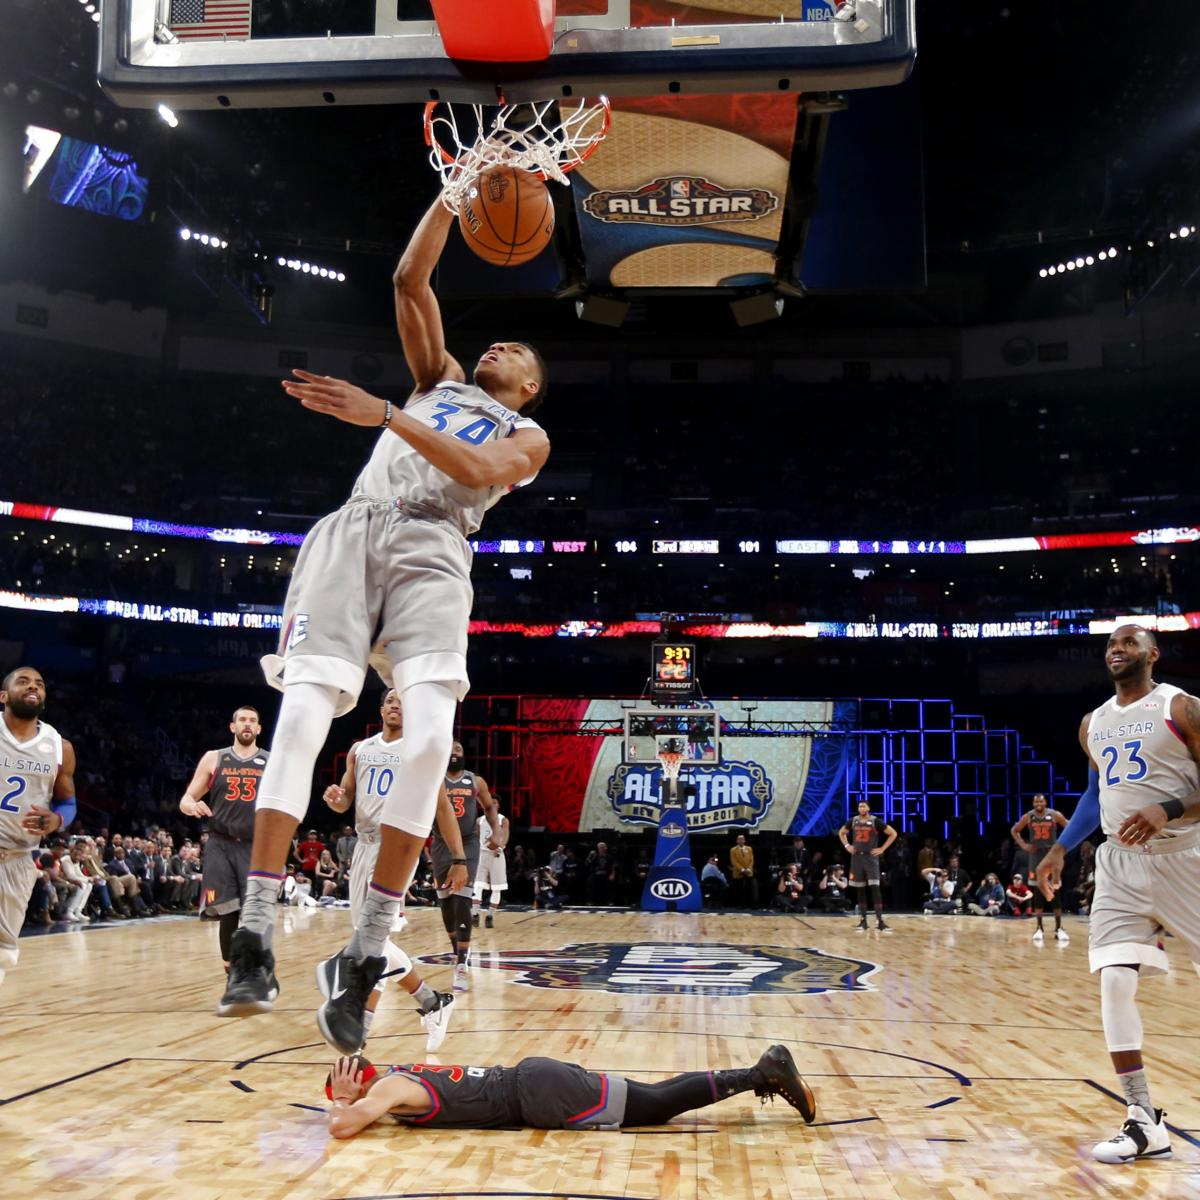 Will $100,000 Prize Make NBA All-Star Game More